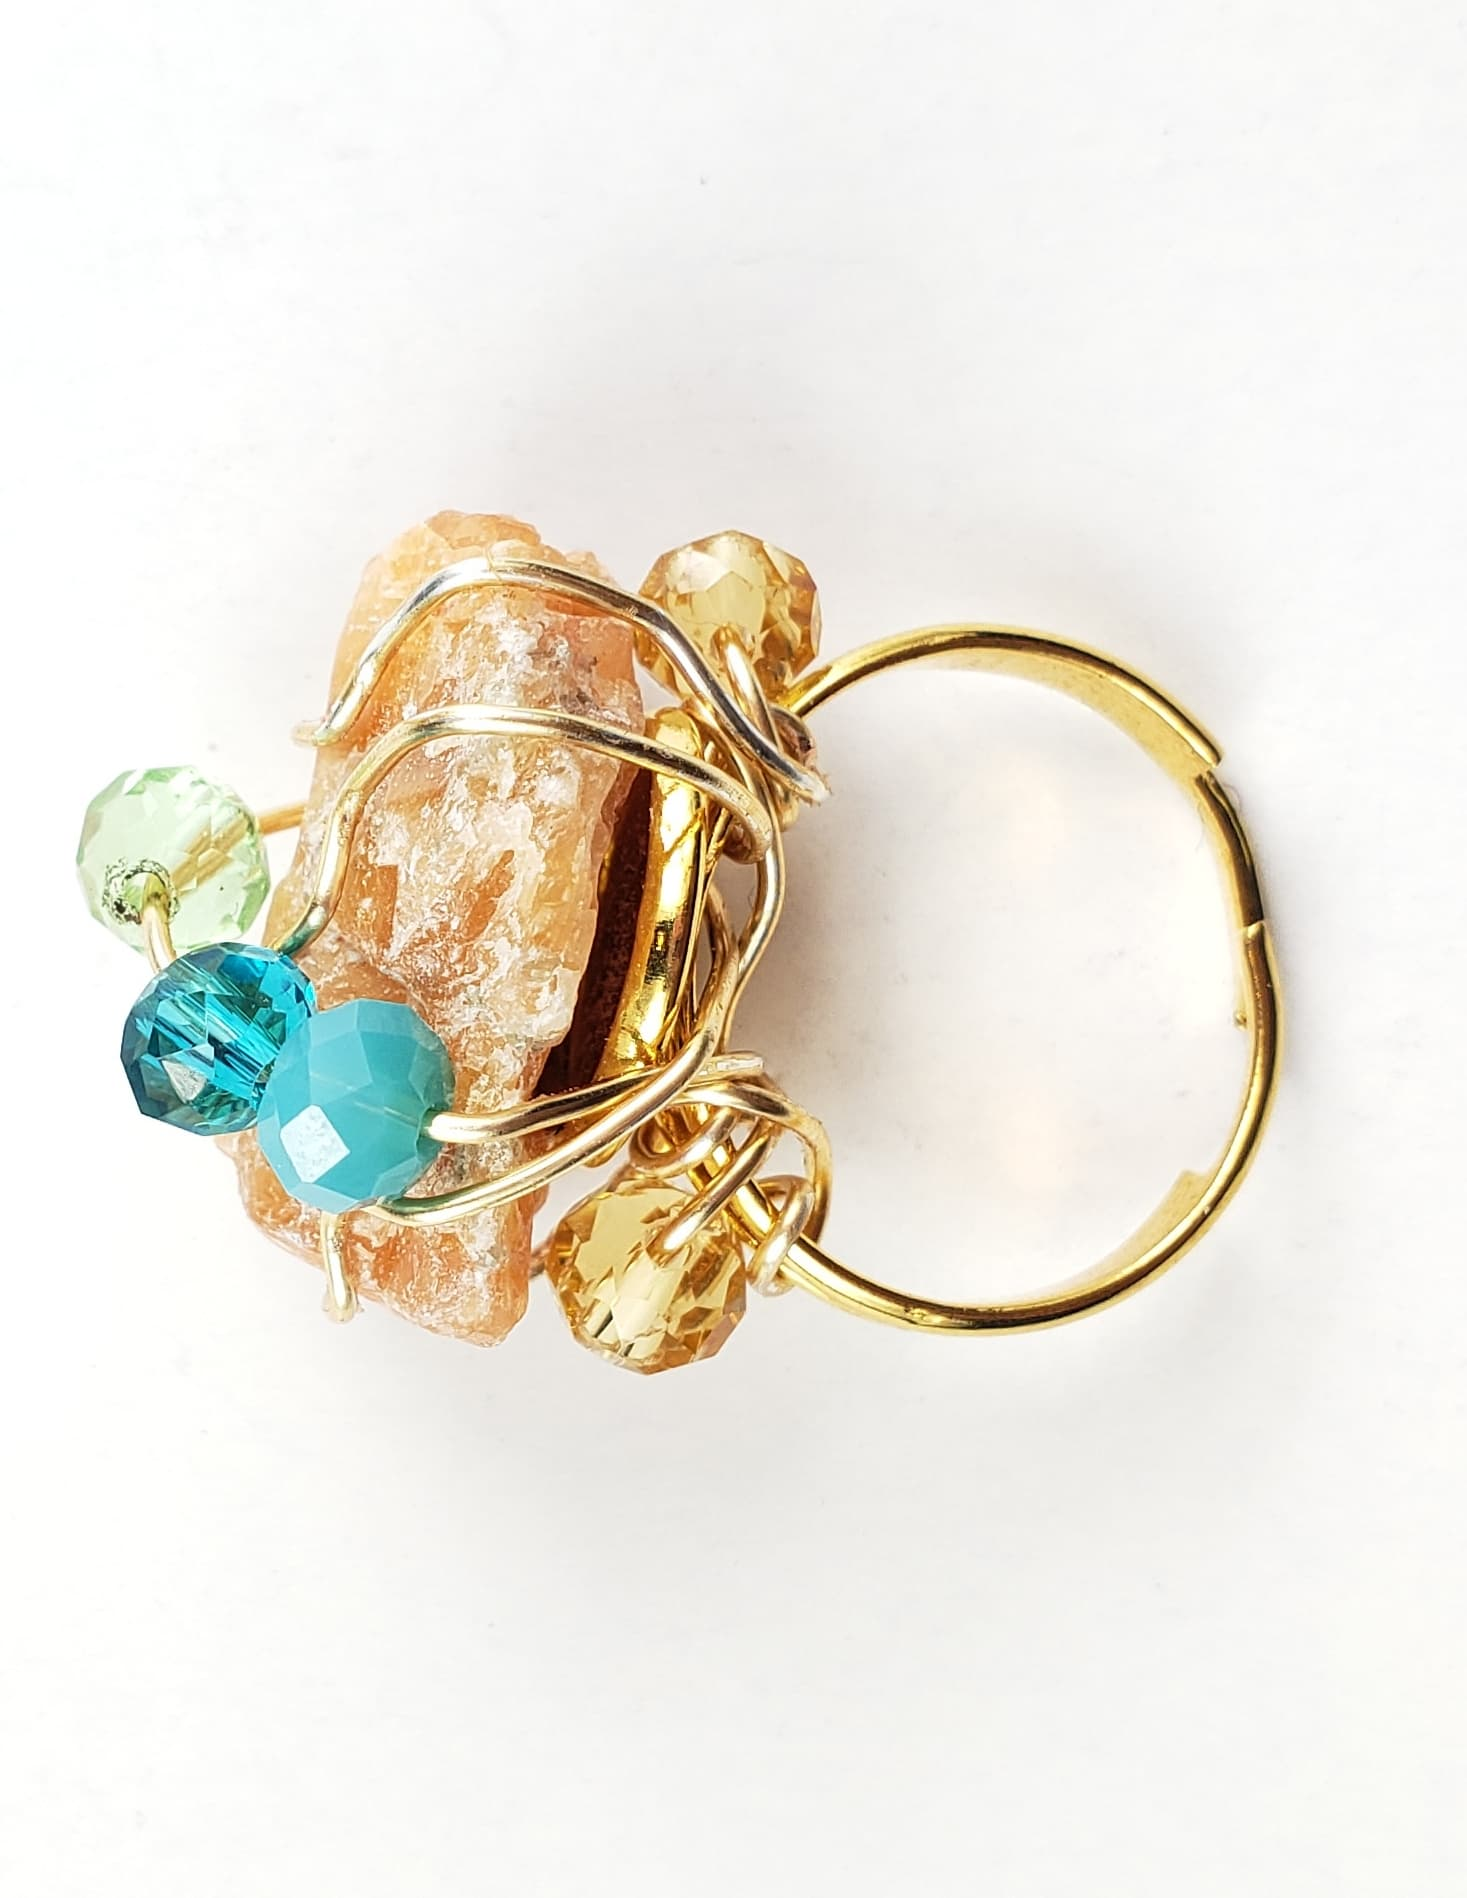 Orange calcite galaxy ring, one of a kind crystal jewelry